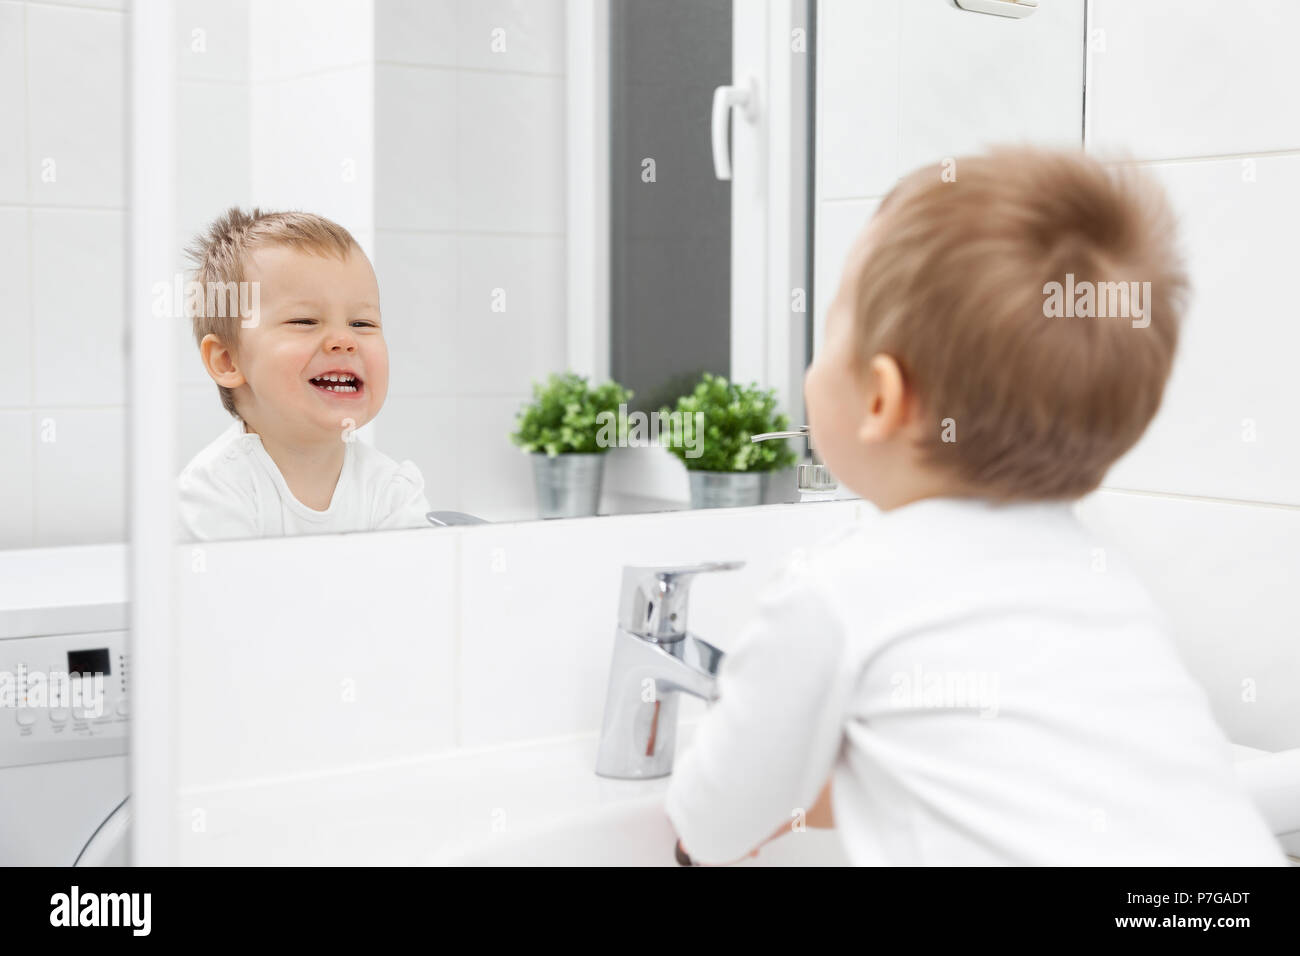 Cute toddler in the bathroom mirror learning how to wash his face - Stock Image